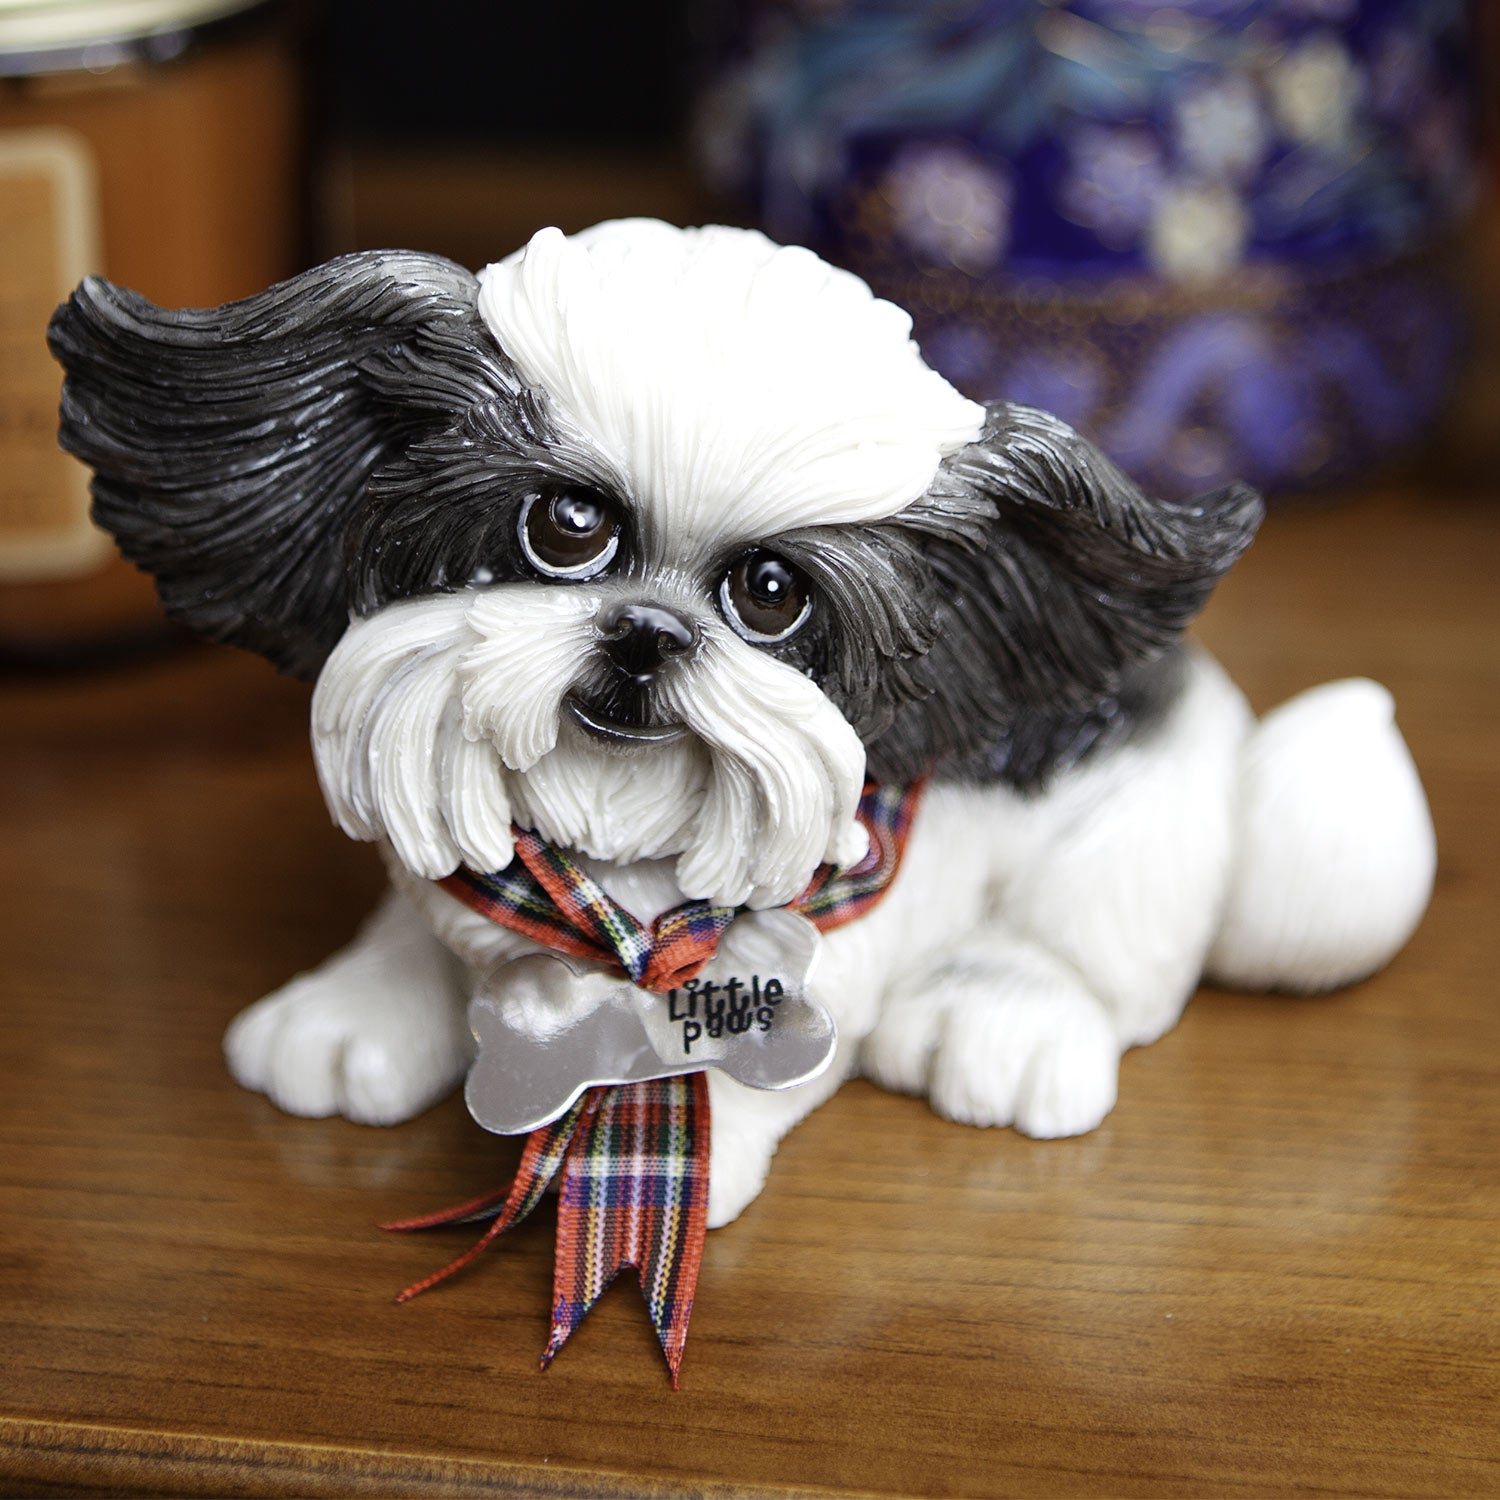 Dog Lover Gifts available at Dog Krazy Gifts - Oreo The Shi Tzu - part of the Little Paws range available from DogKrazyGifts.co.uk